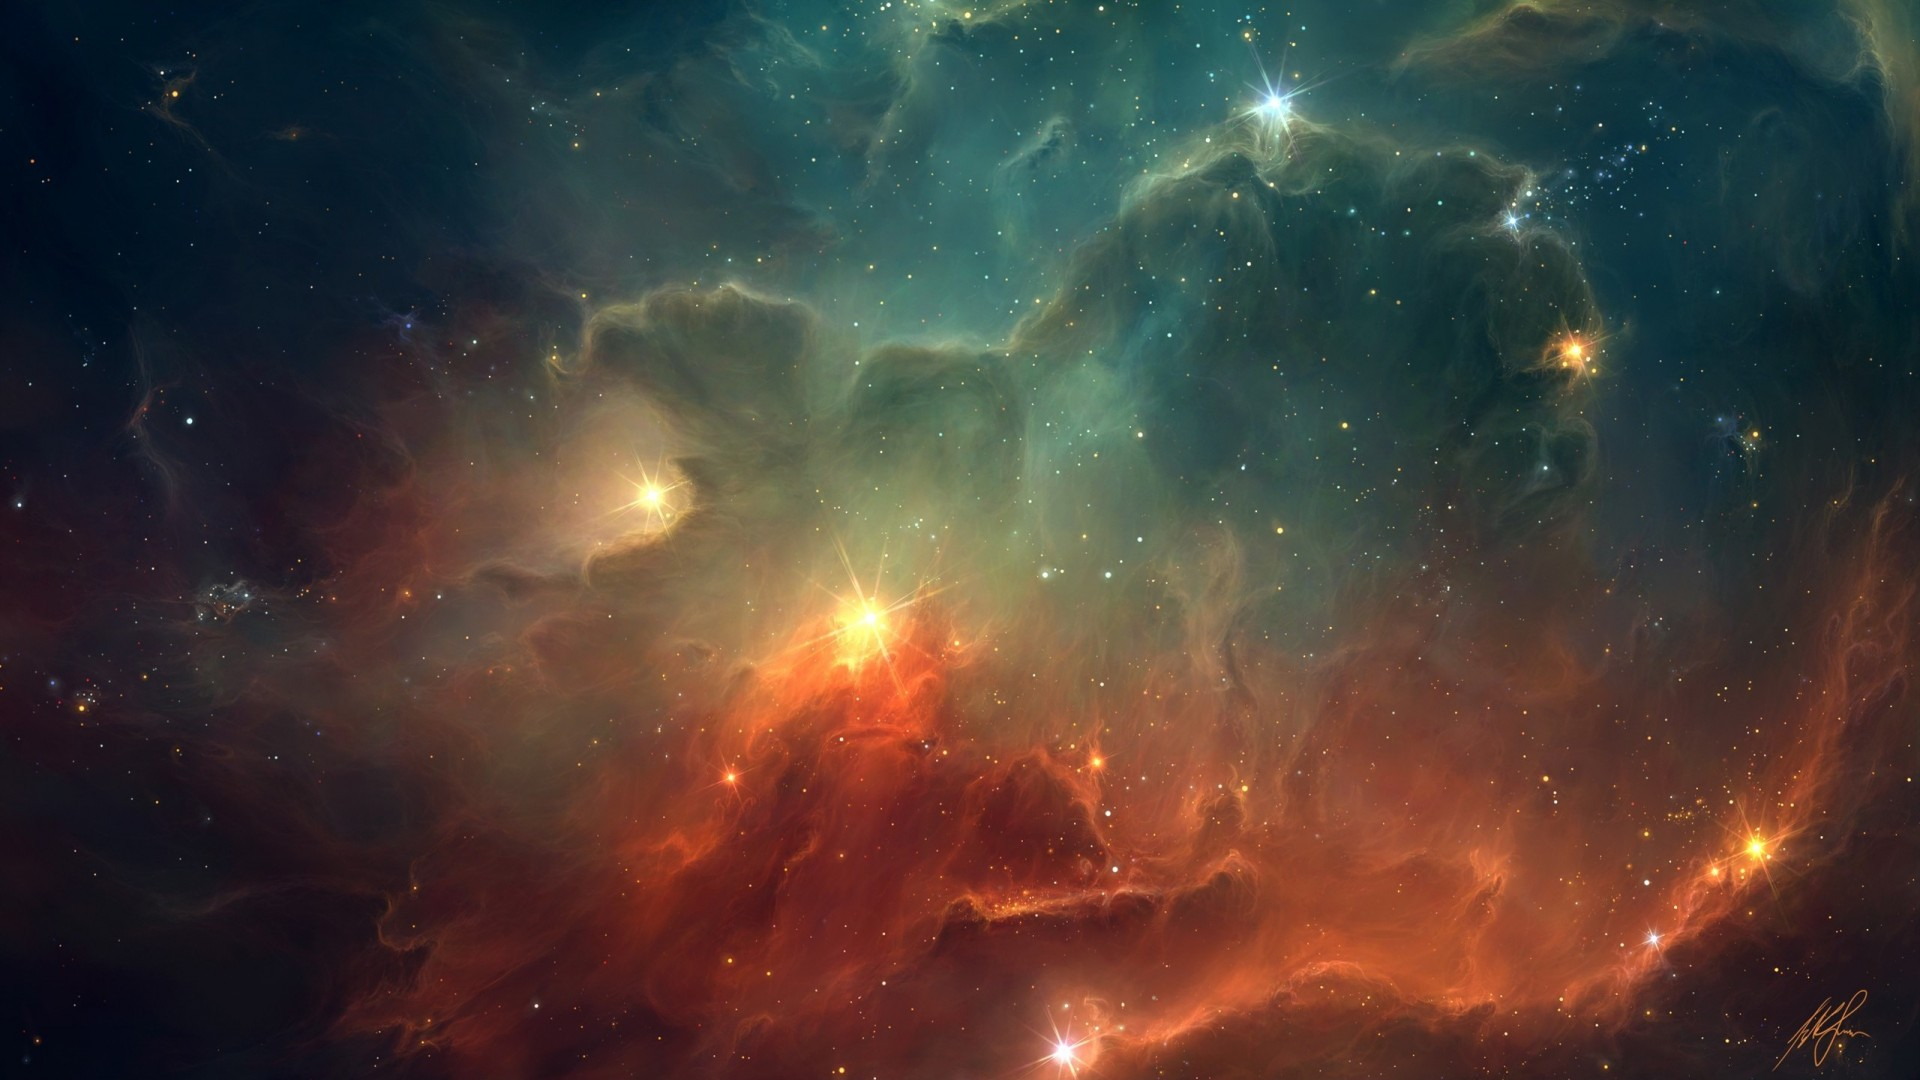 1920x1080 - Space Wallpaper and Screensavers 54